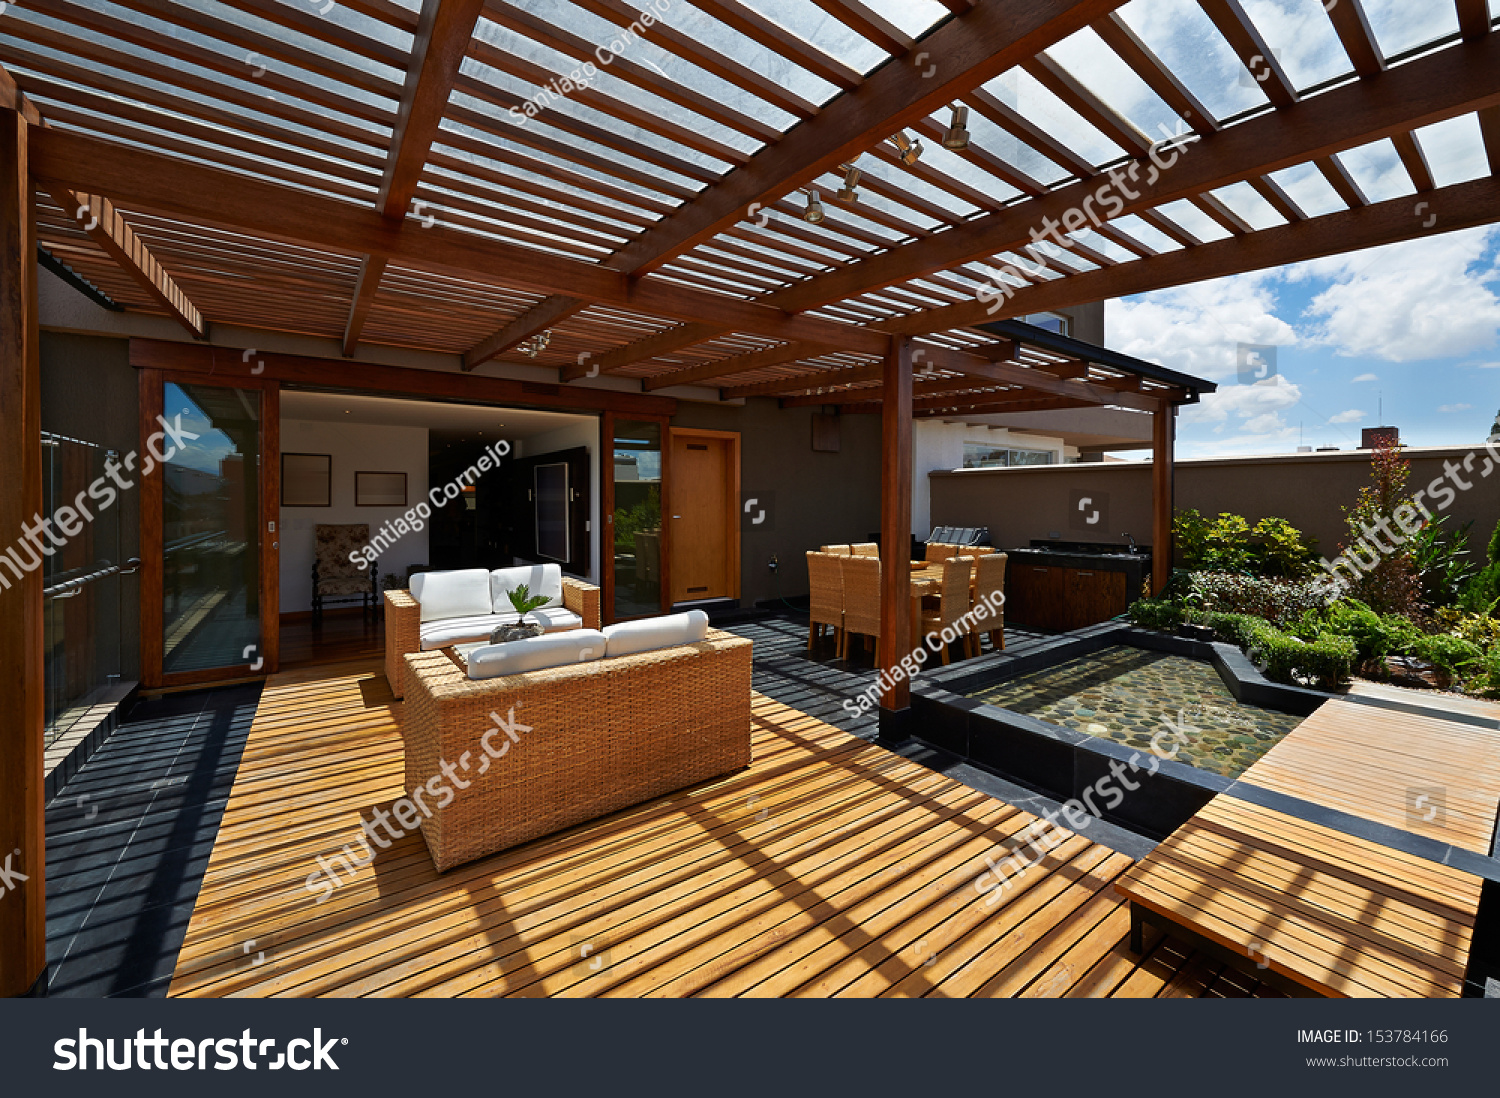 interior design beautiful terrace lounge pergola stock photo 153784166 shutterstock. Black Bedroom Furniture Sets. Home Design Ideas